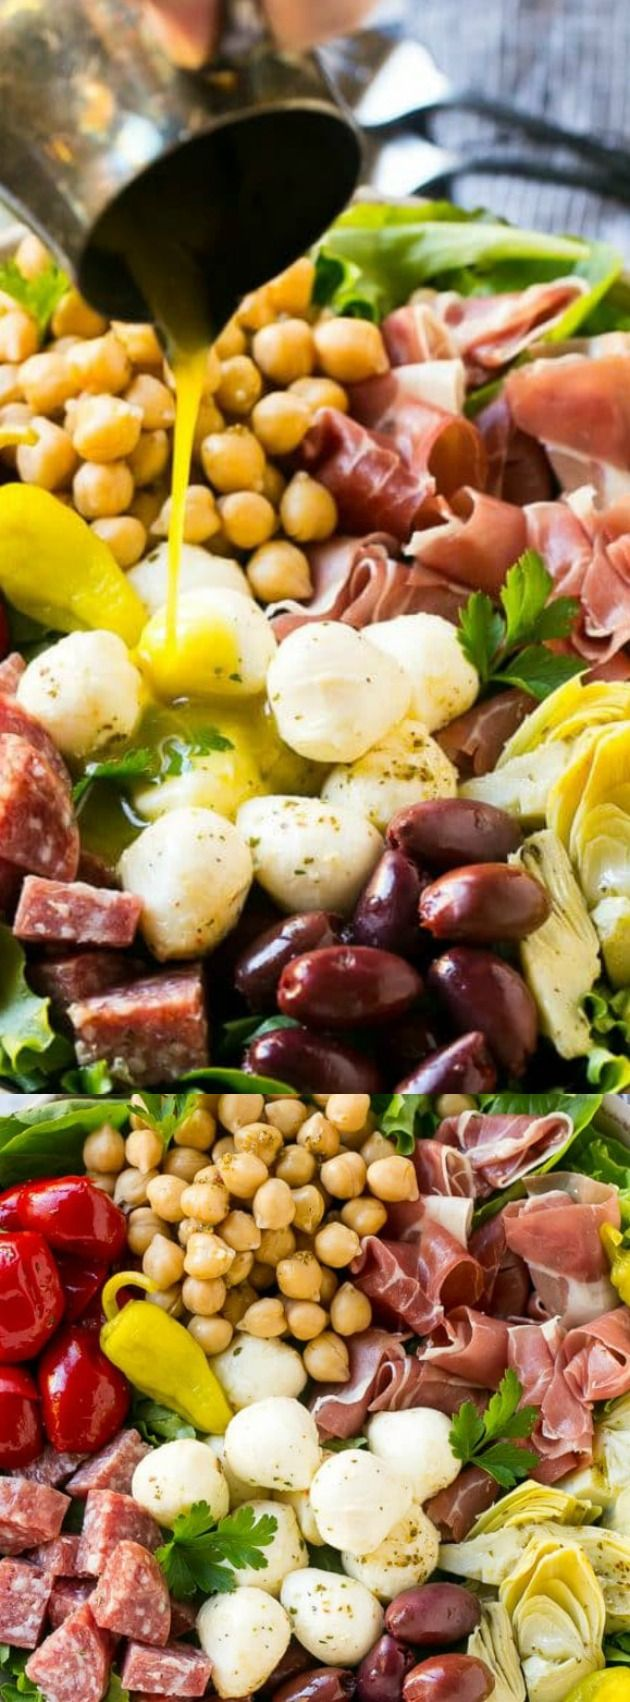 This Antipasto Salad from Dinner at the Zoo is salad perfection! Its loaded with flavorful Italian meats, creamy cheese, olives and veggies!